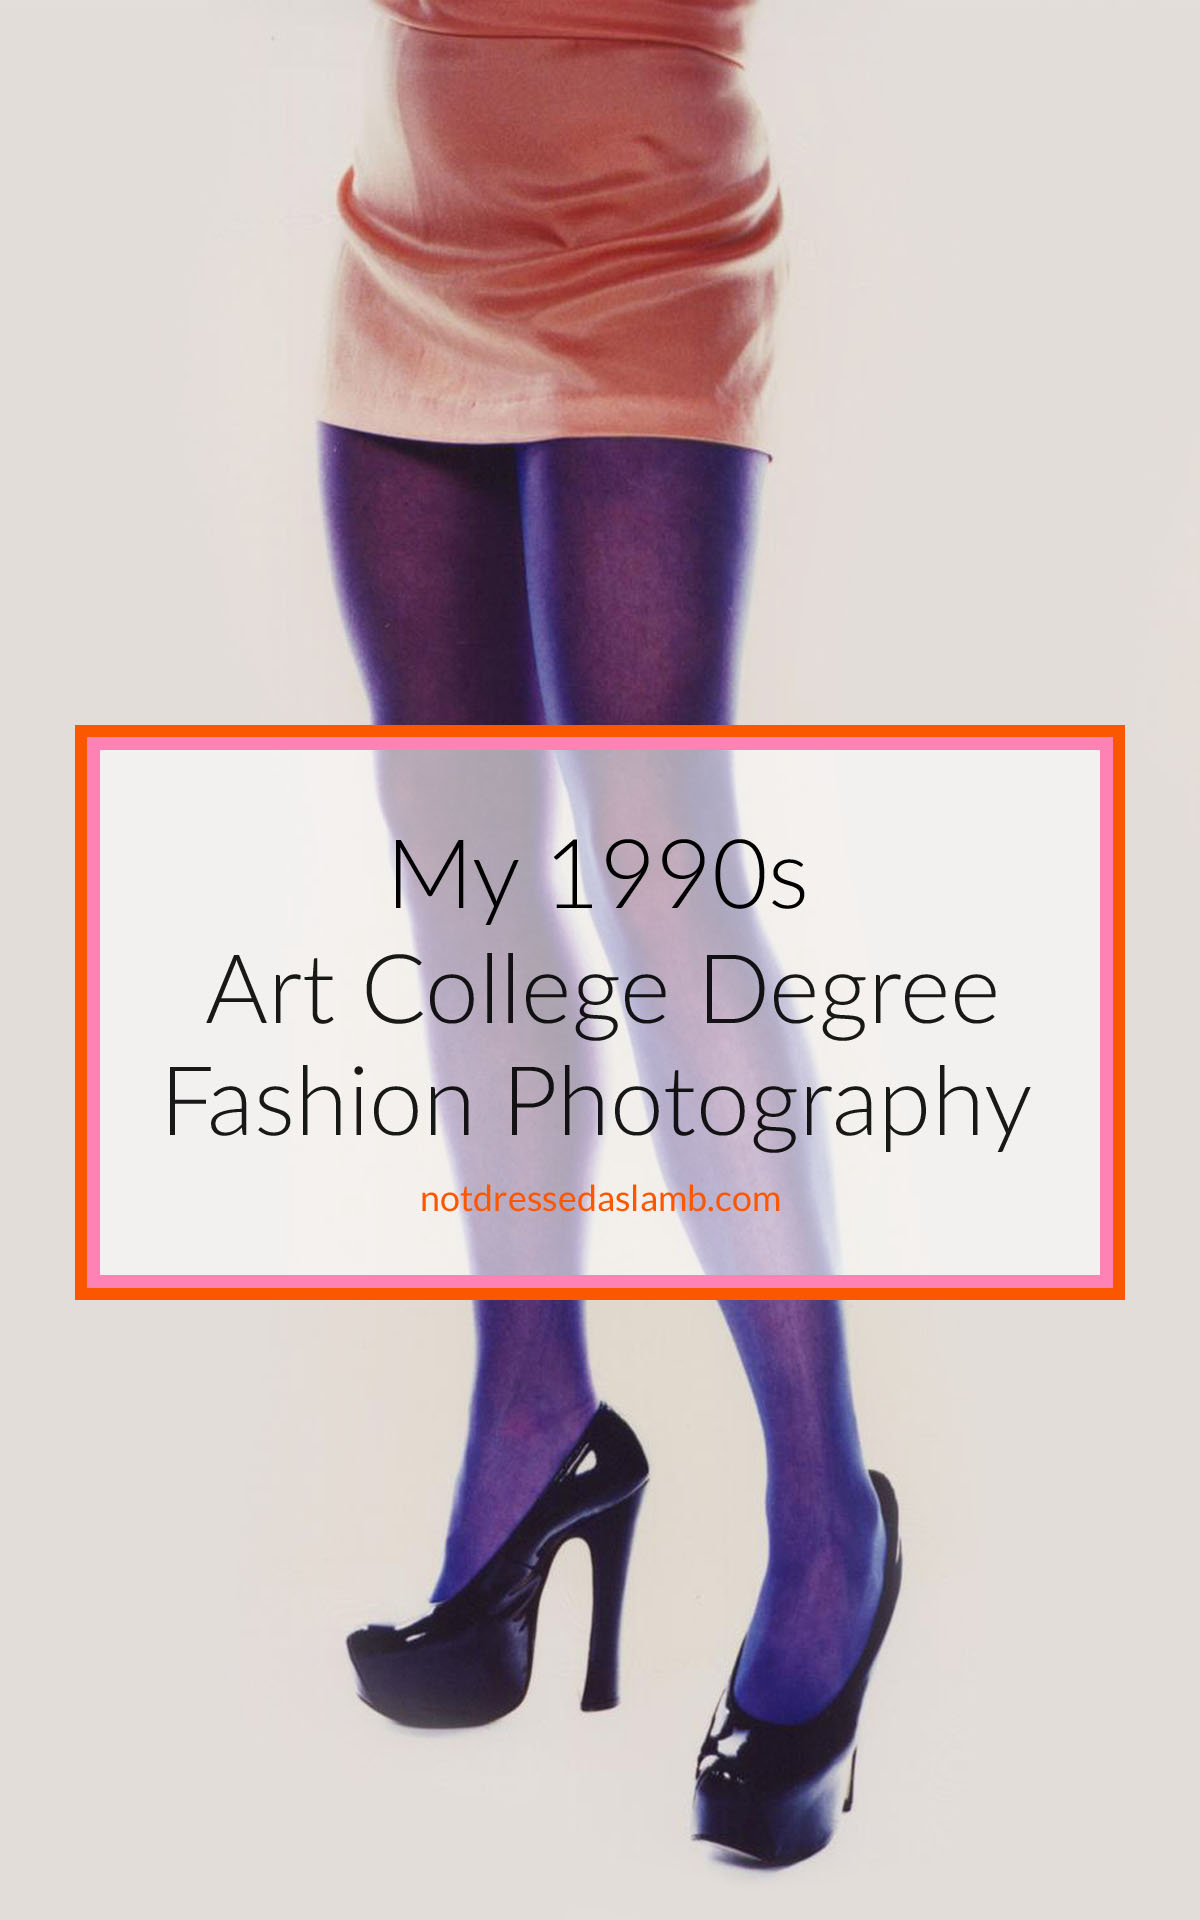 My 1990s Art College Degree Fashion Photography | Not Dressed As Lamb